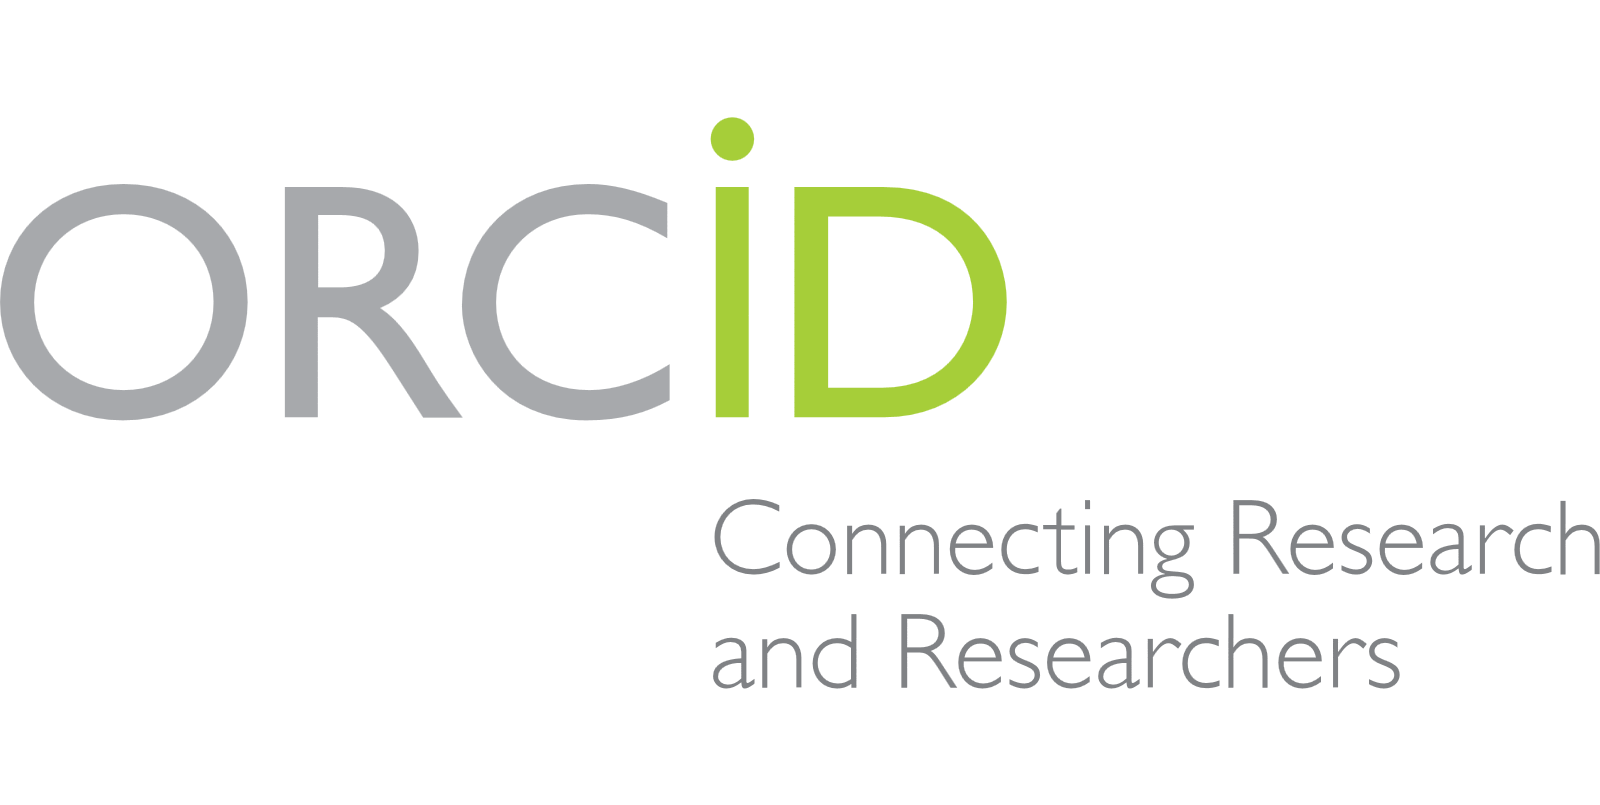 ORCID logo with tagline